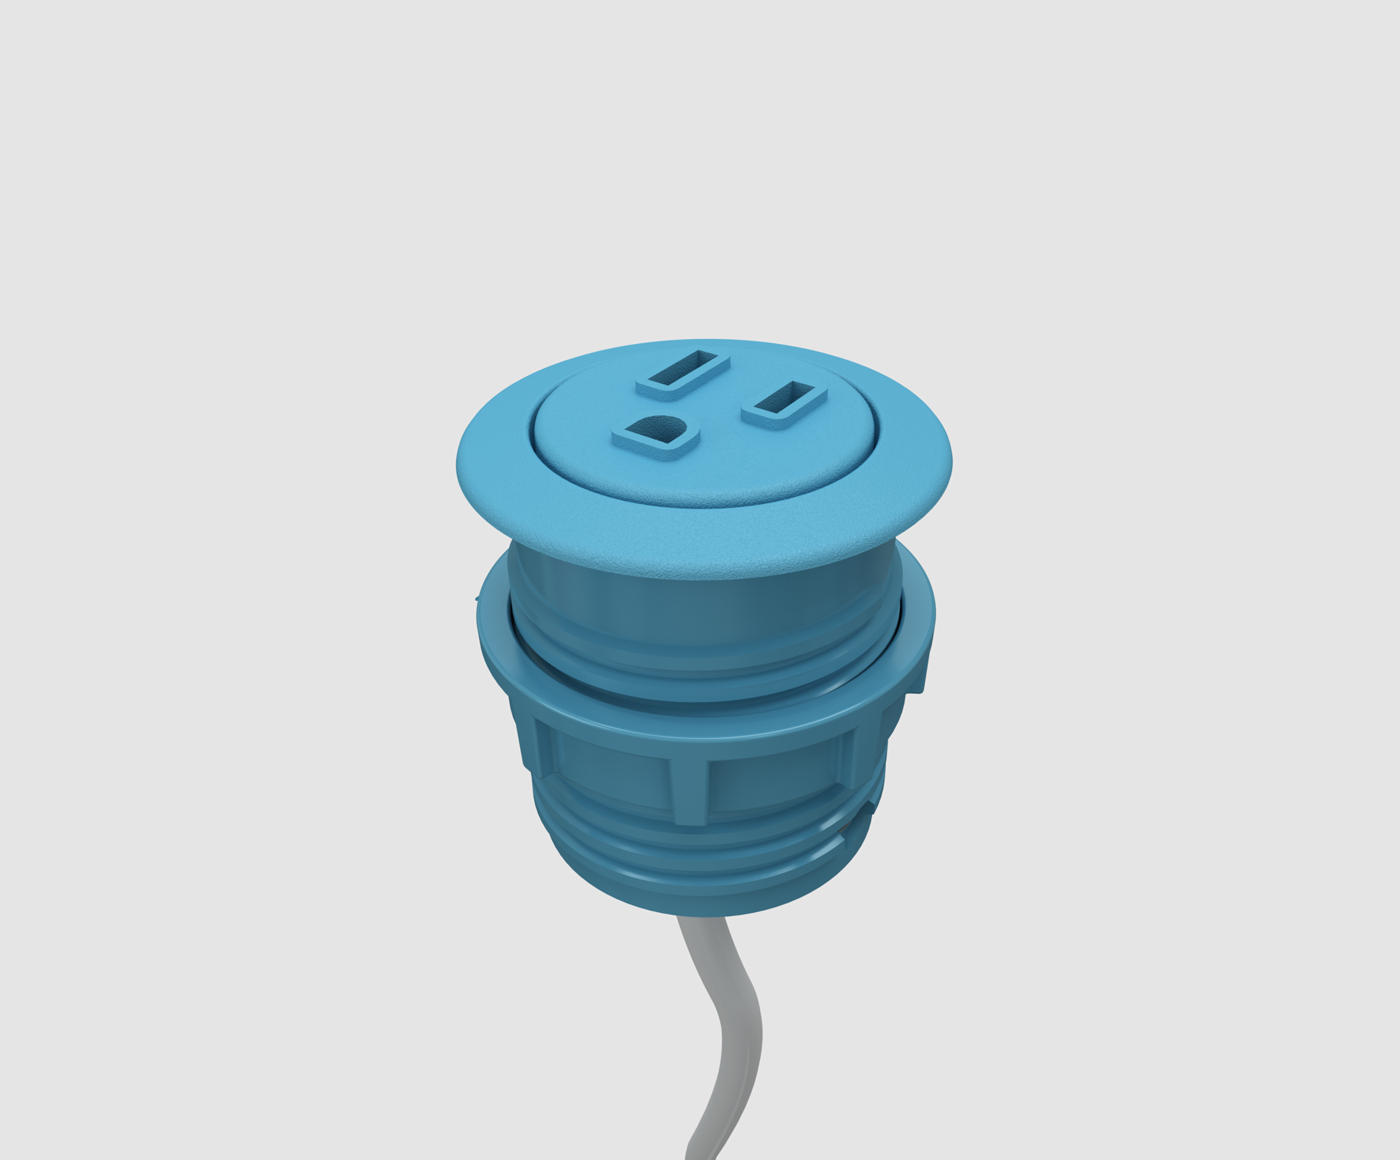 Power Grommet Outlet Pepper Byrne Electrical Mini Usb Cable Wiring Diagram Receptacle Shapes And Configured Part